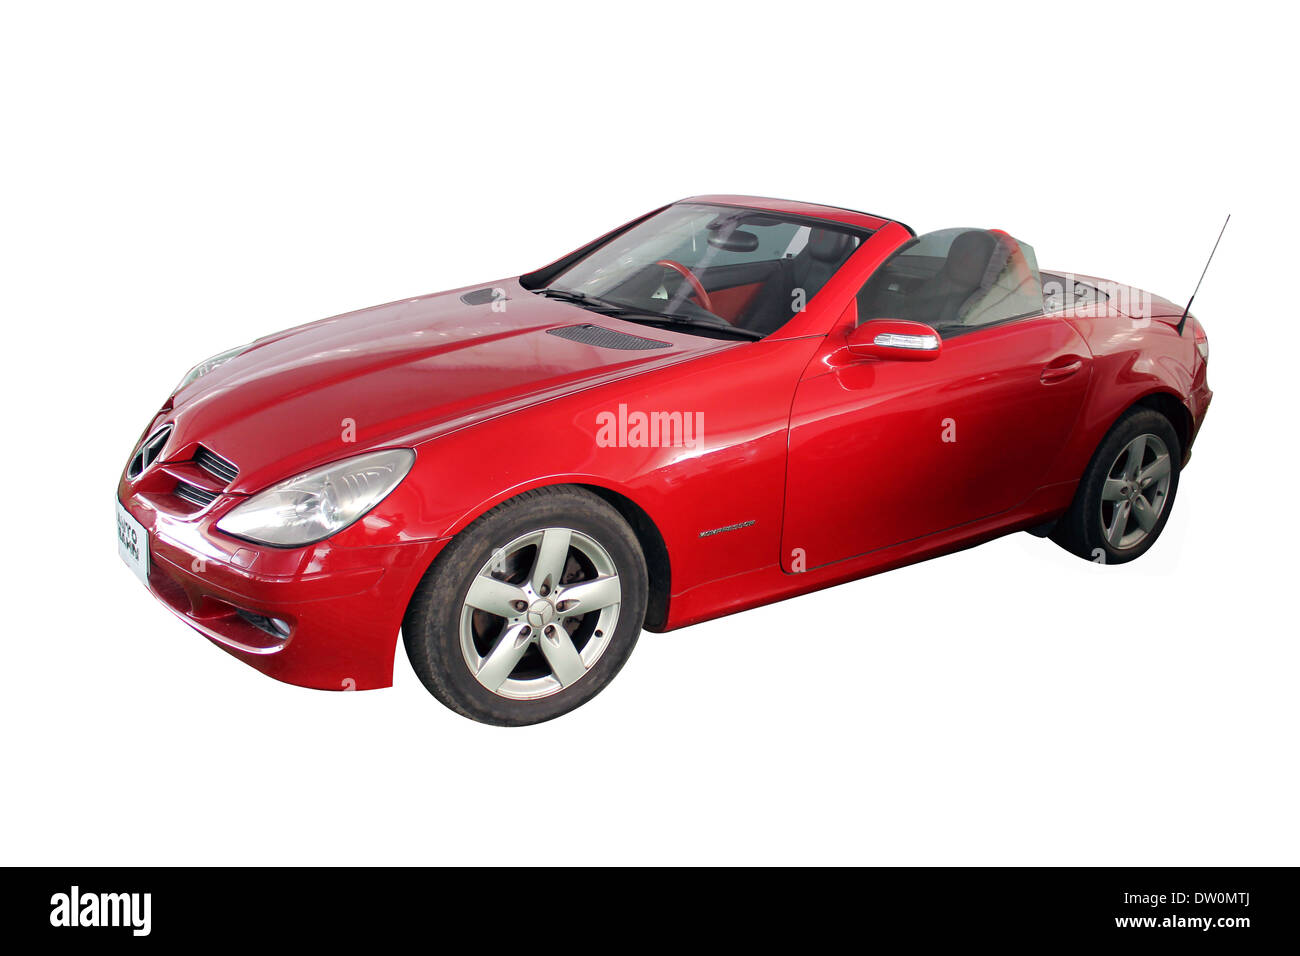 2011 Mercedes Benz Sl550 Convertible >> White Mercedes Convertible Car Stock Photos & White Mercedes Convertible Car Stock Images - Alamy